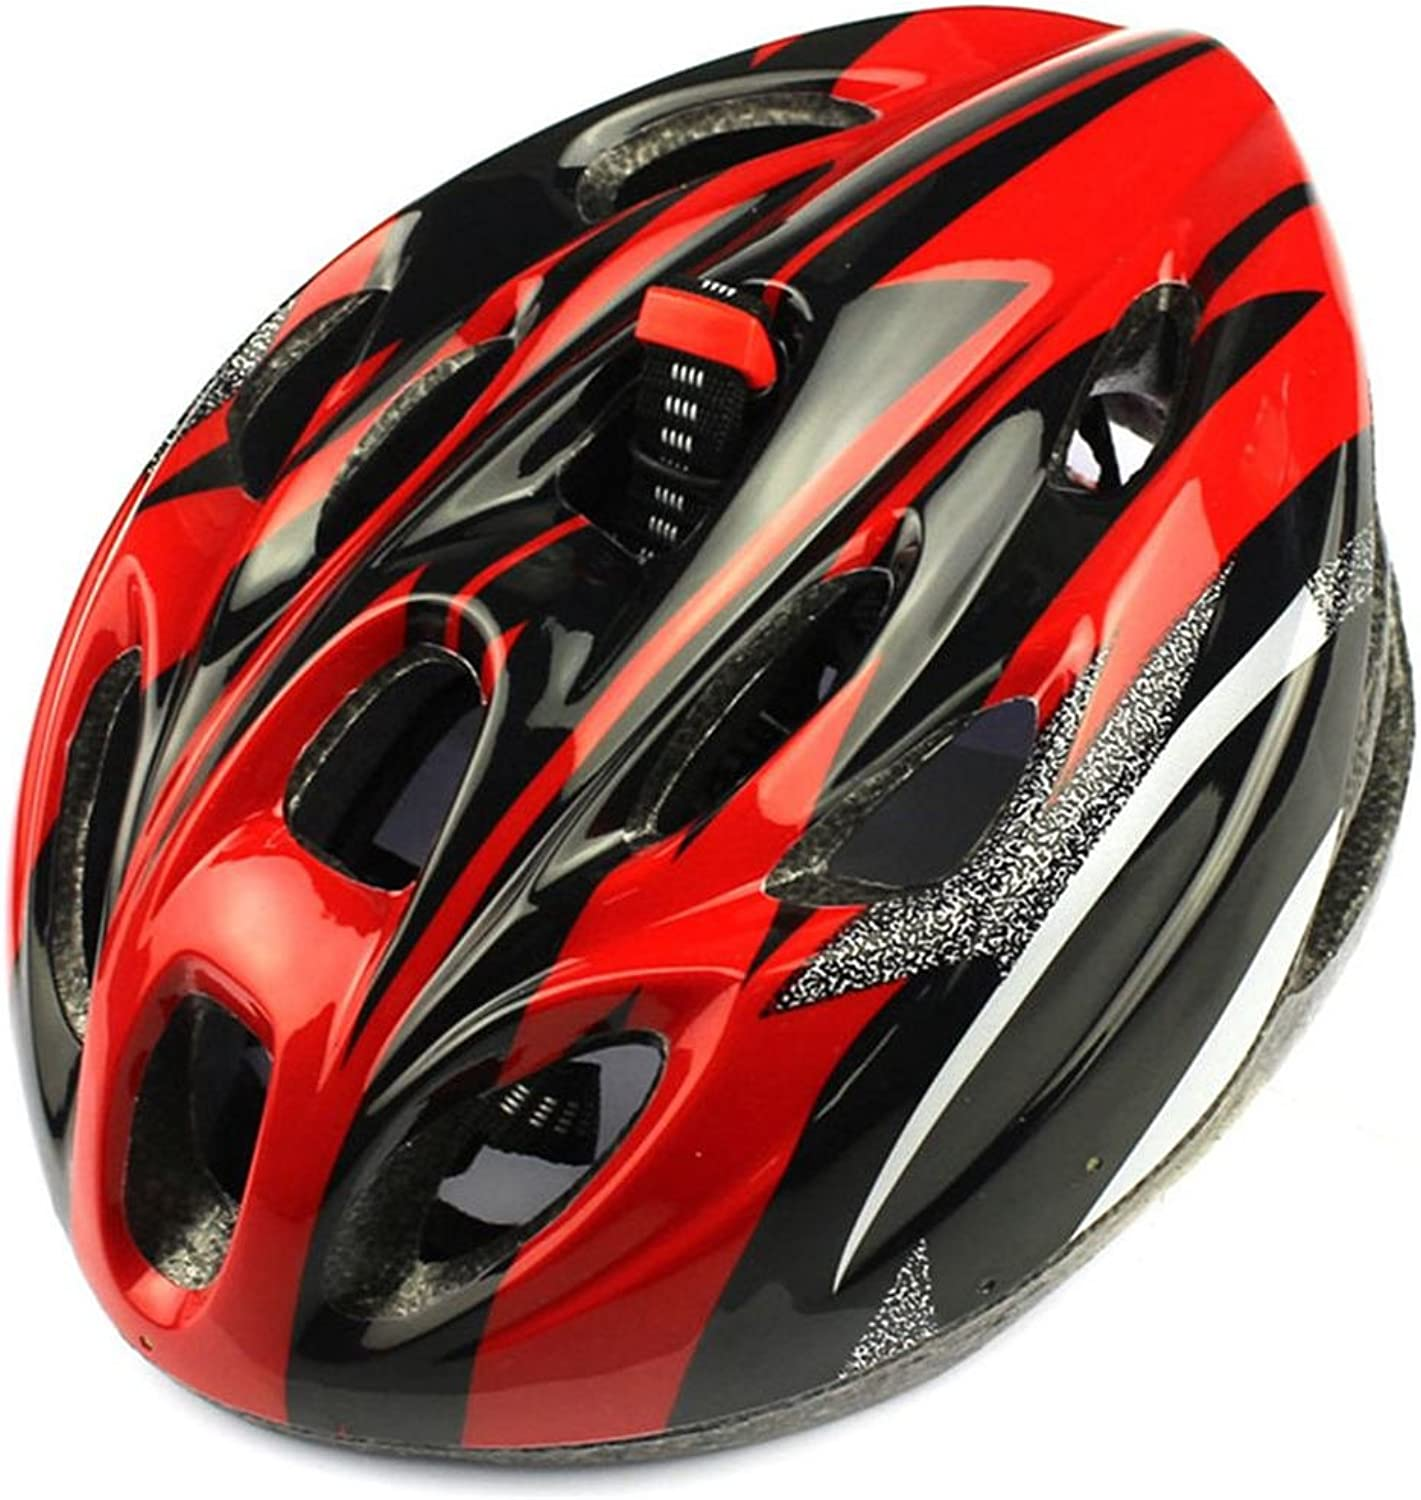 AOBRITON Adult Sports Mountain Road Bicycle Bike Cycling Helmet Ultralight Bike Accessories Outdoor Cycling Camping